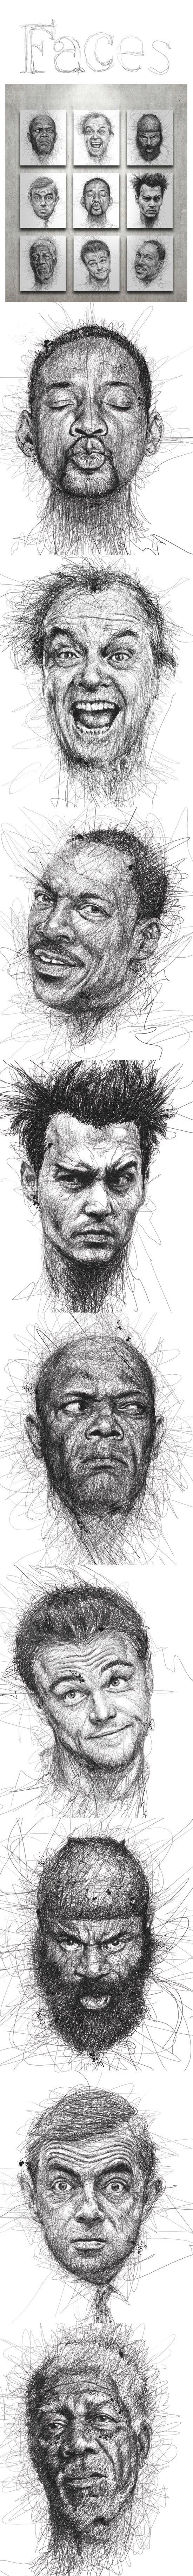 Faces by Vince Low - what a cool way to draw with pen. ive done a similar idea…